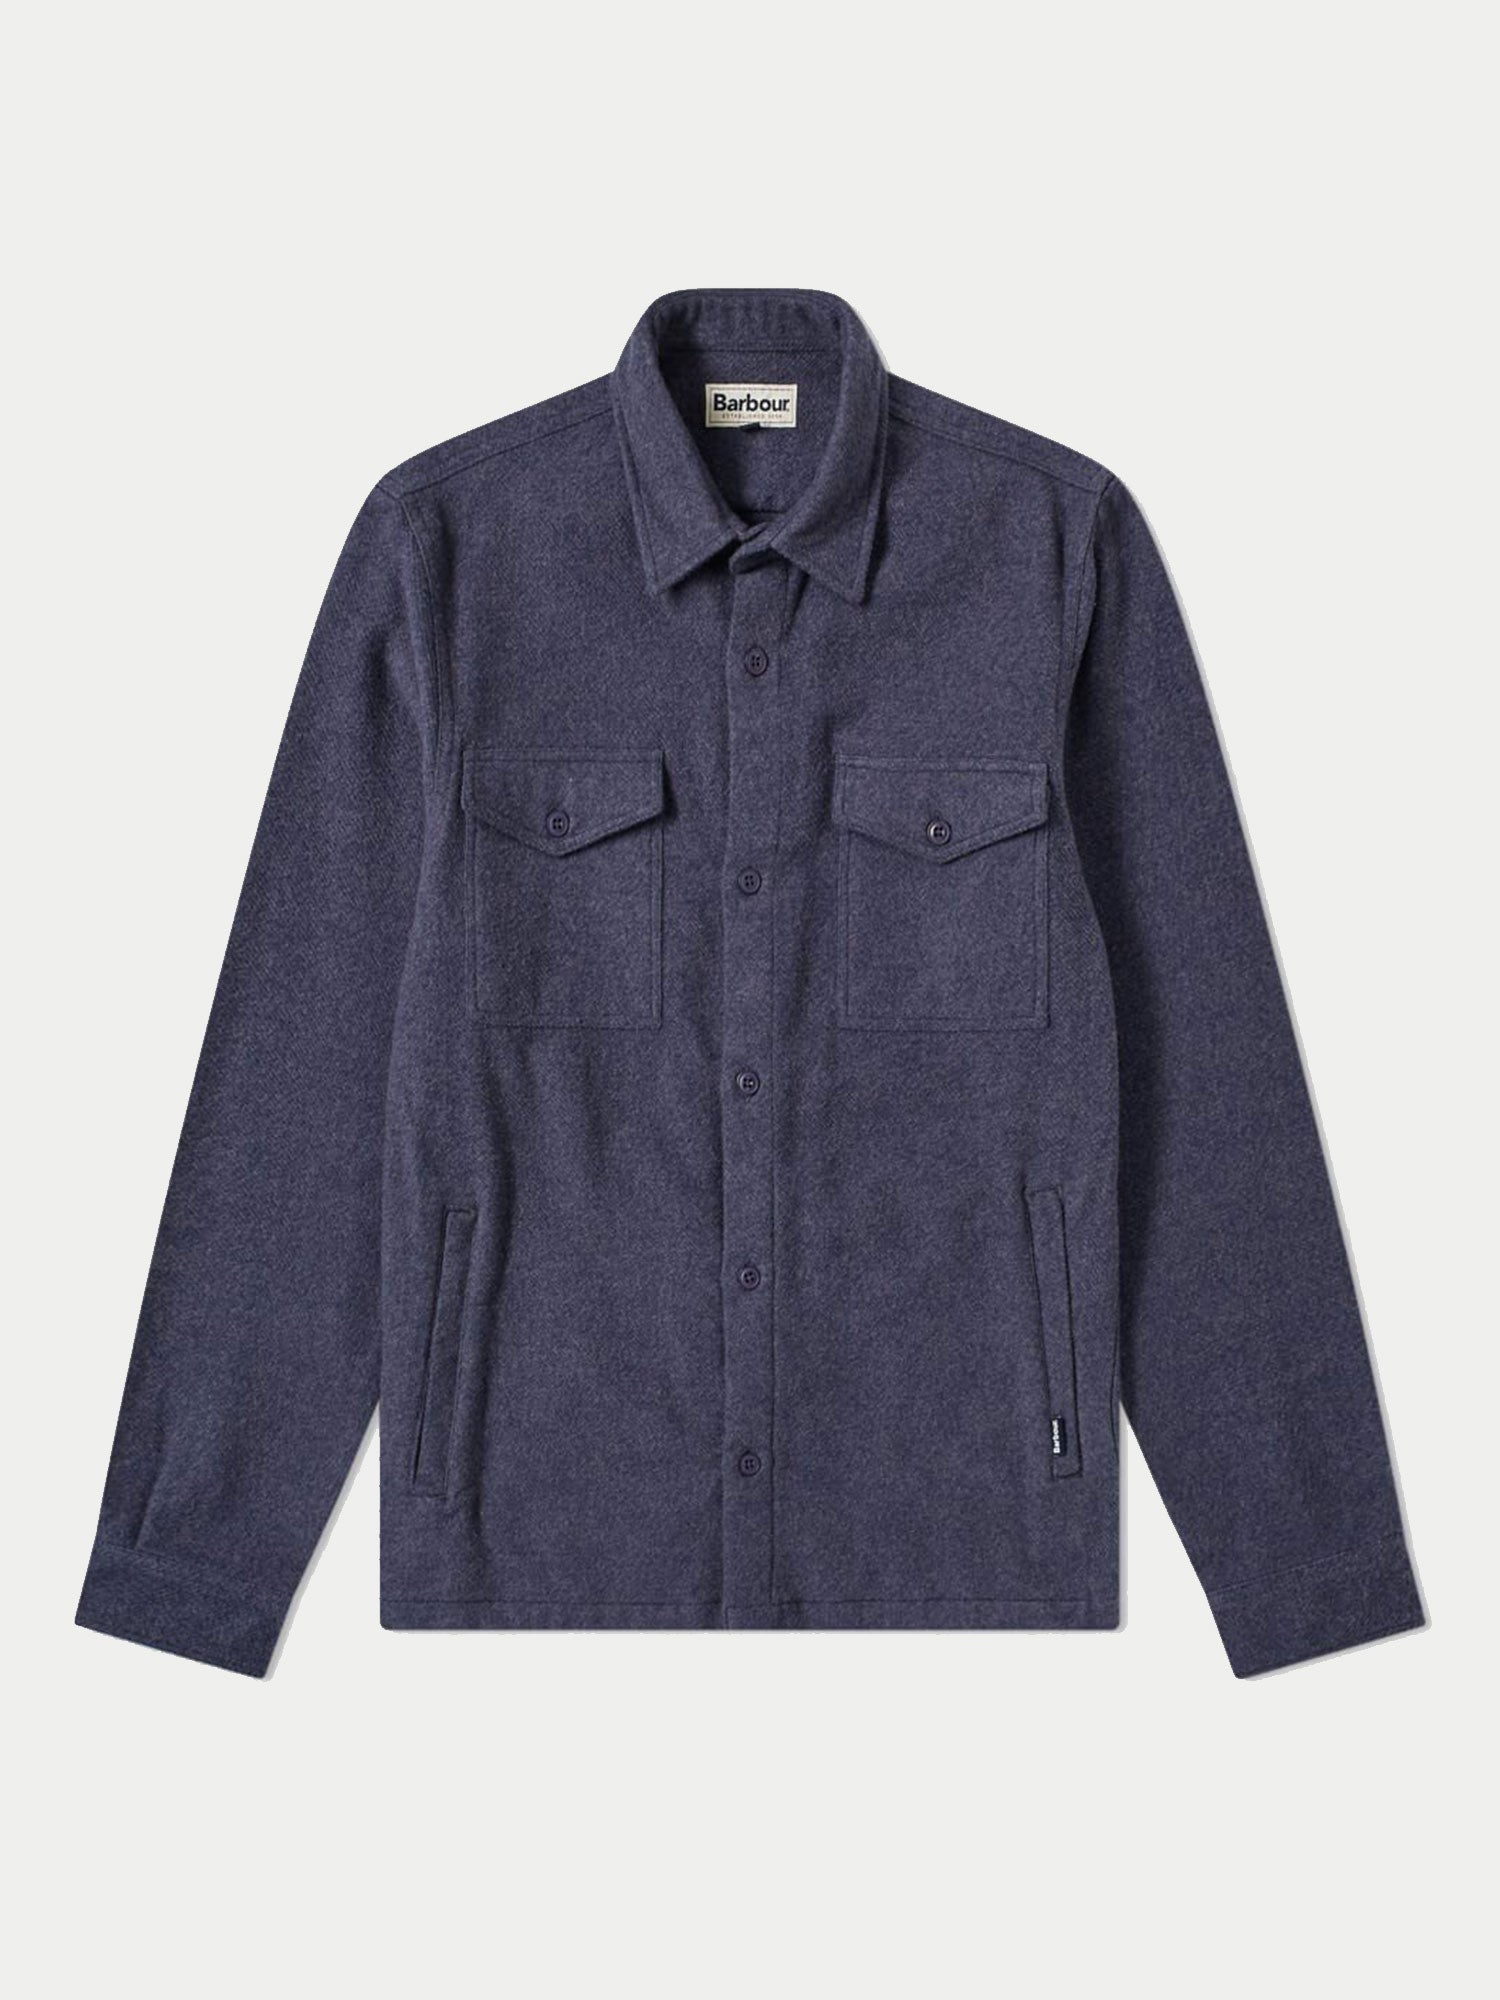 Barbour Brushed Twill Overshirt (Navy) 2